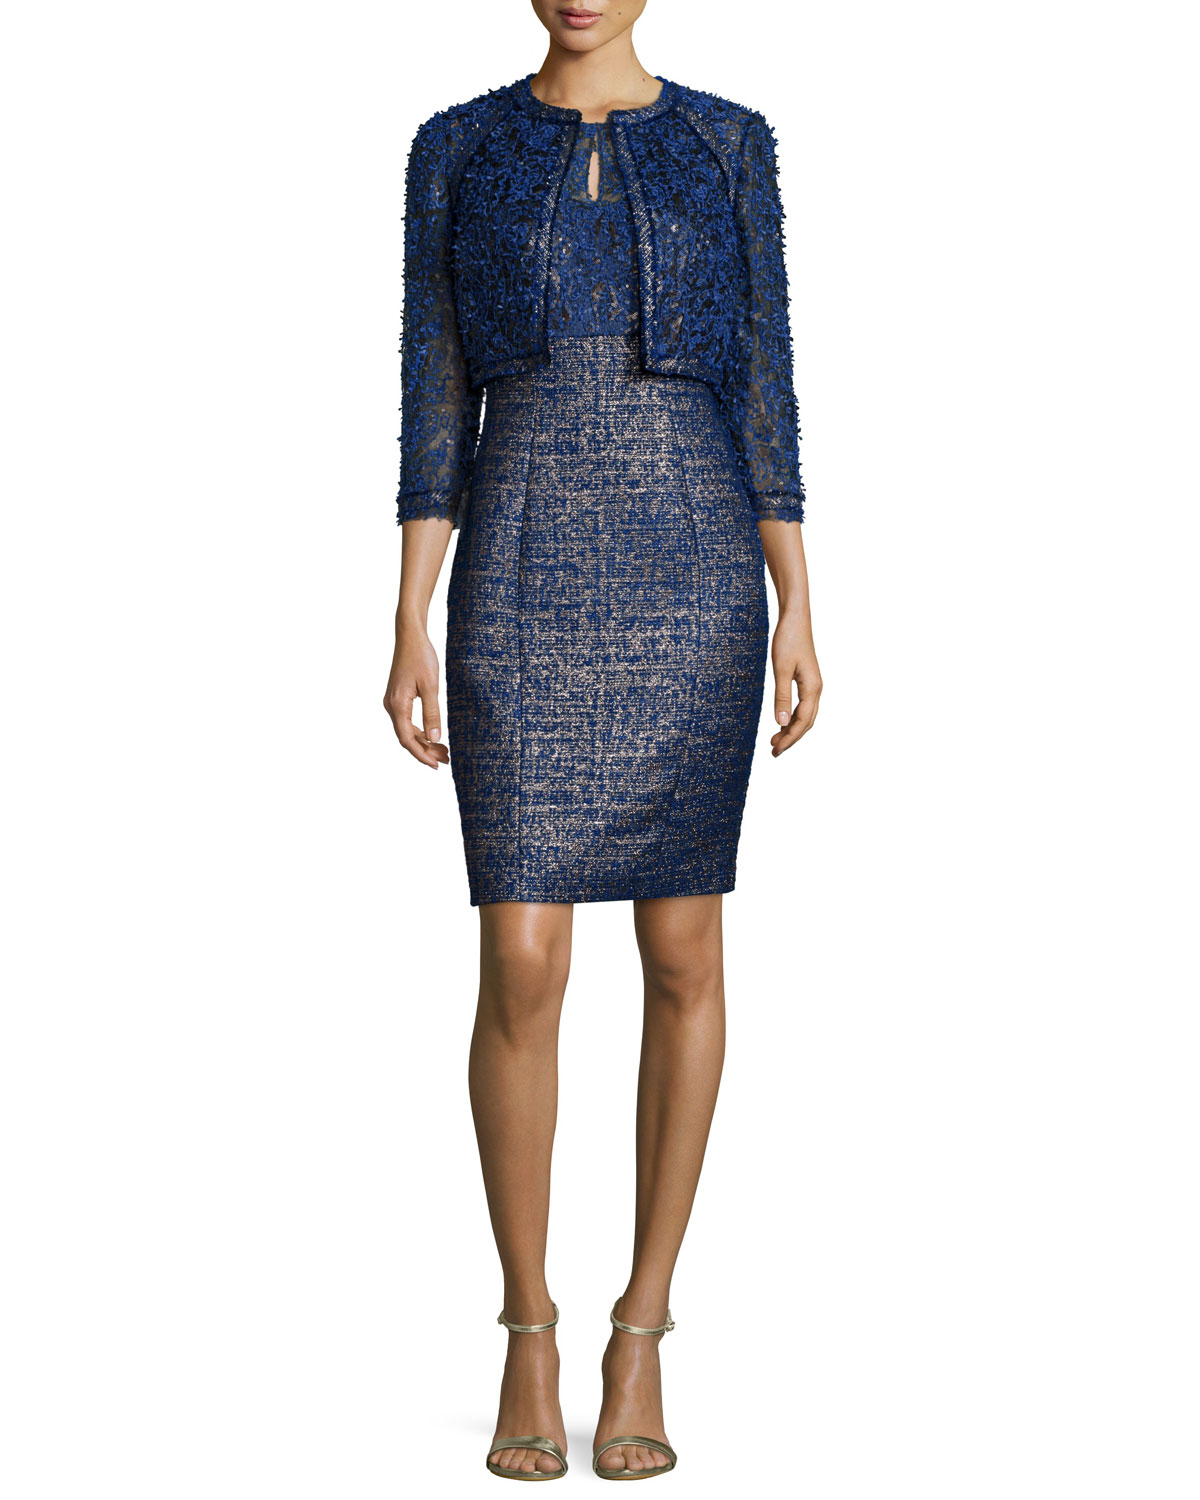 Lyst - Kay unger Cocktail Dress and Jacket Set in Blue